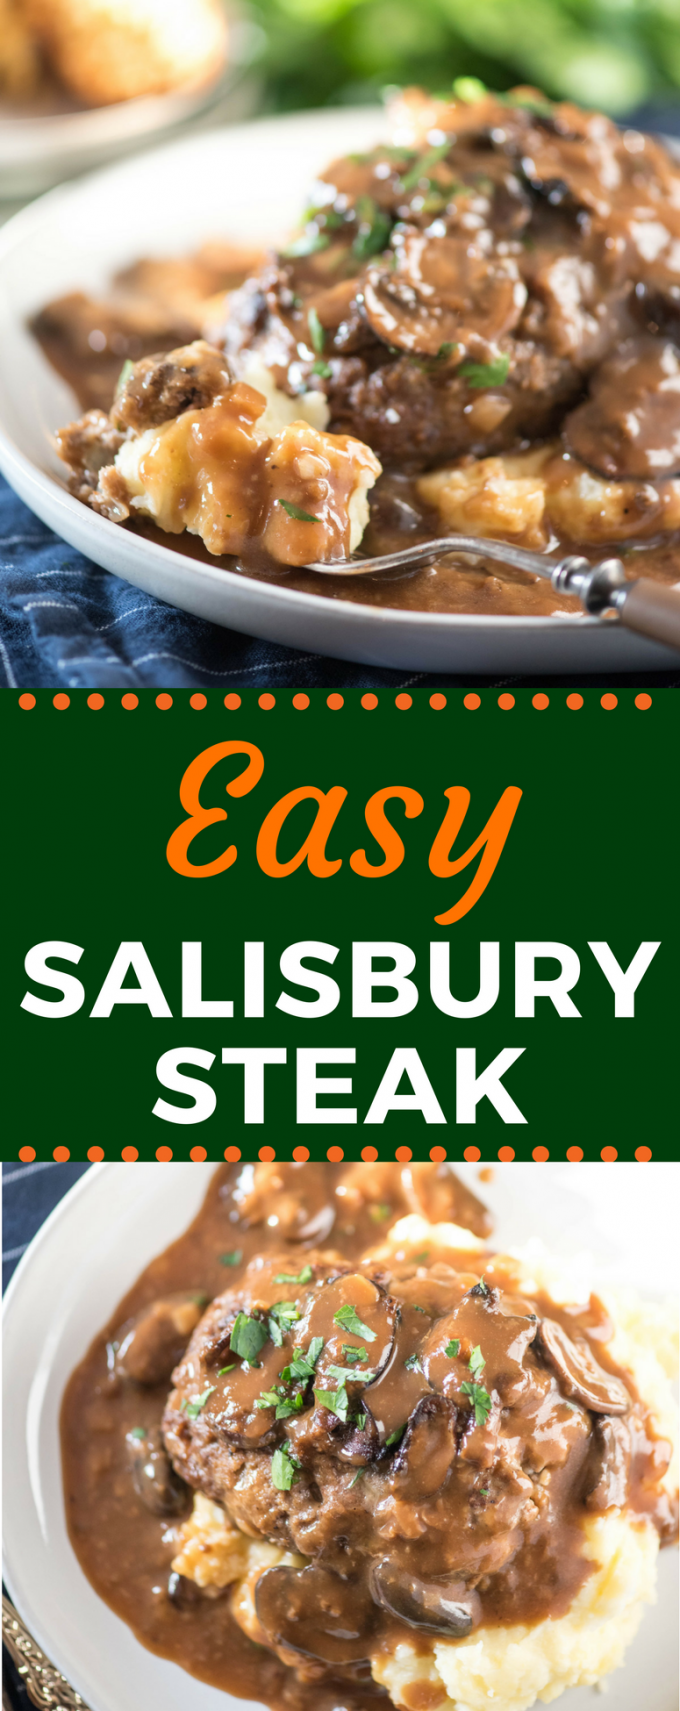 This Easy Salisbury Steak is so delicious, it even rivals the Pioneer Woman recipe! Serve it alongside a potato casserole for a dinner that everyone will love! #salisburysteak #pioneerwomansalisburysteak #comfortfood #gogogogourmet